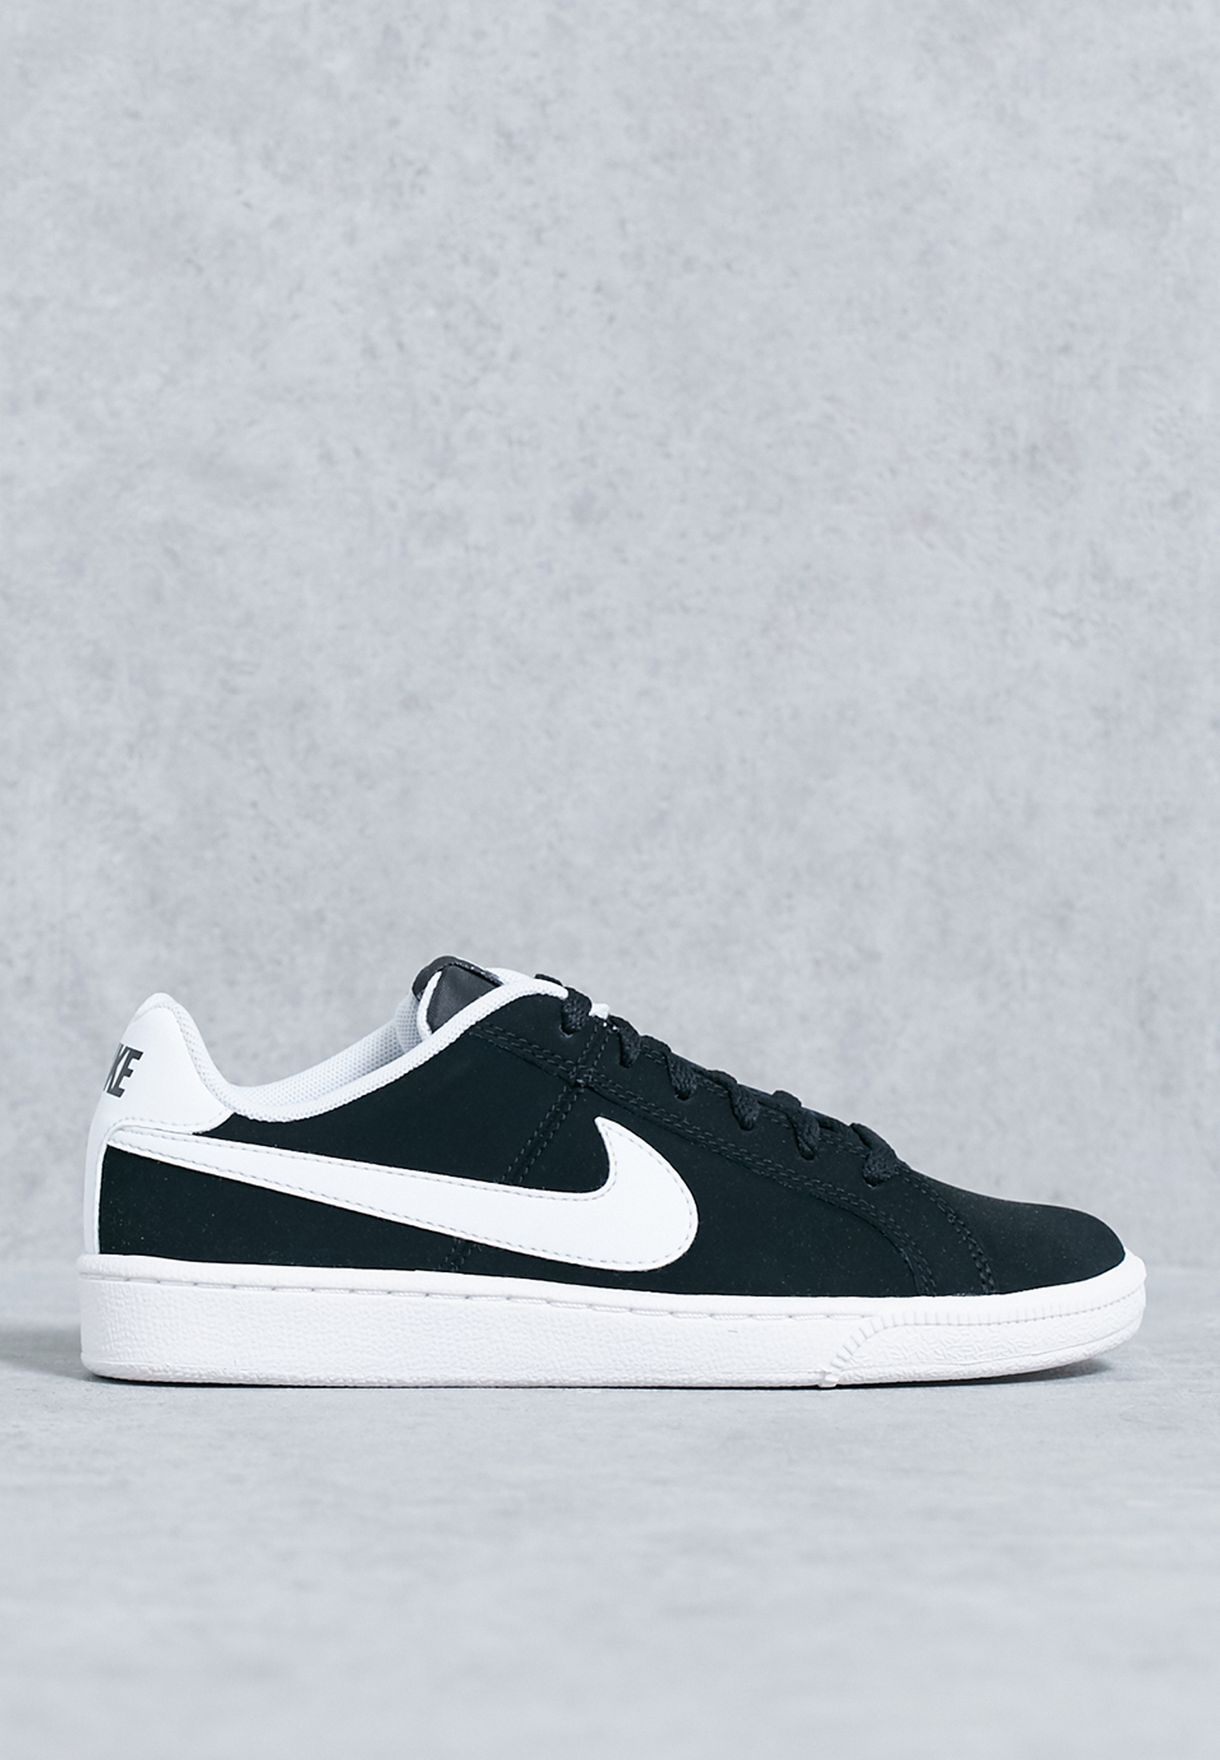 c66df53845 Shop Nike black Youth Court Royale 833535-002 for Kids in UAE ...